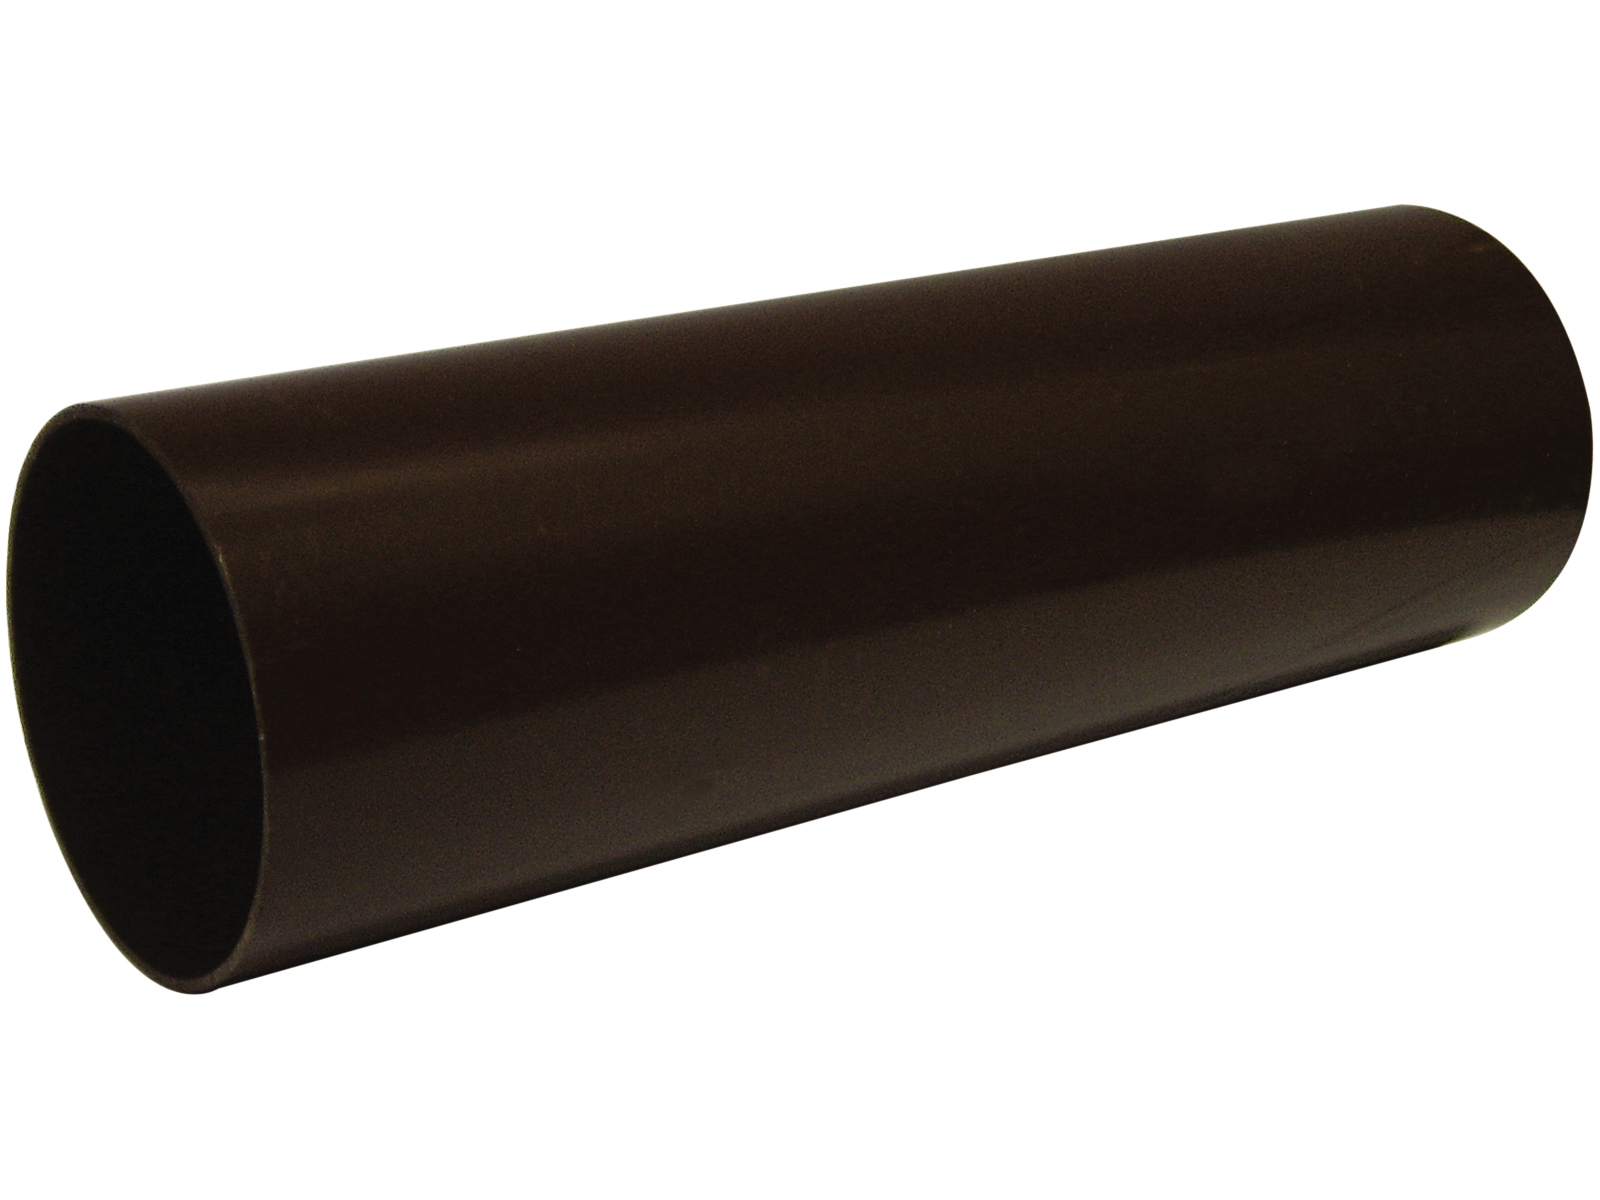 FLOPLAST 68MM ROUND DOWNPIPE - RP5.5 PIPE 5.5M - BROWN